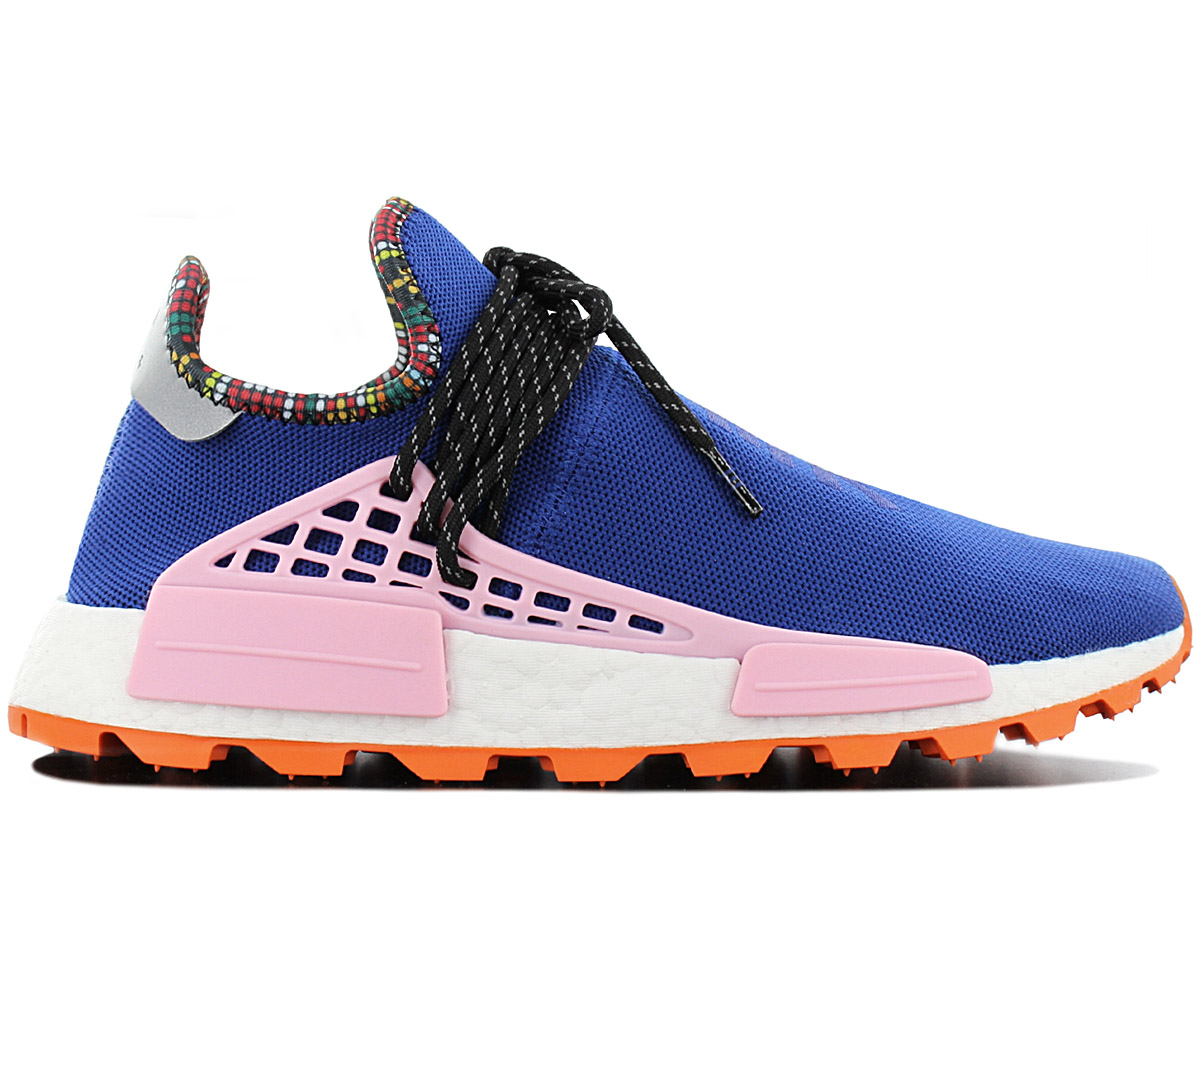 best website 656f2 07b6b Details about NEW adidas Pharrell Williams Solar HU Human Race NMD PW  EE7579 ''INSPIRATION PAC